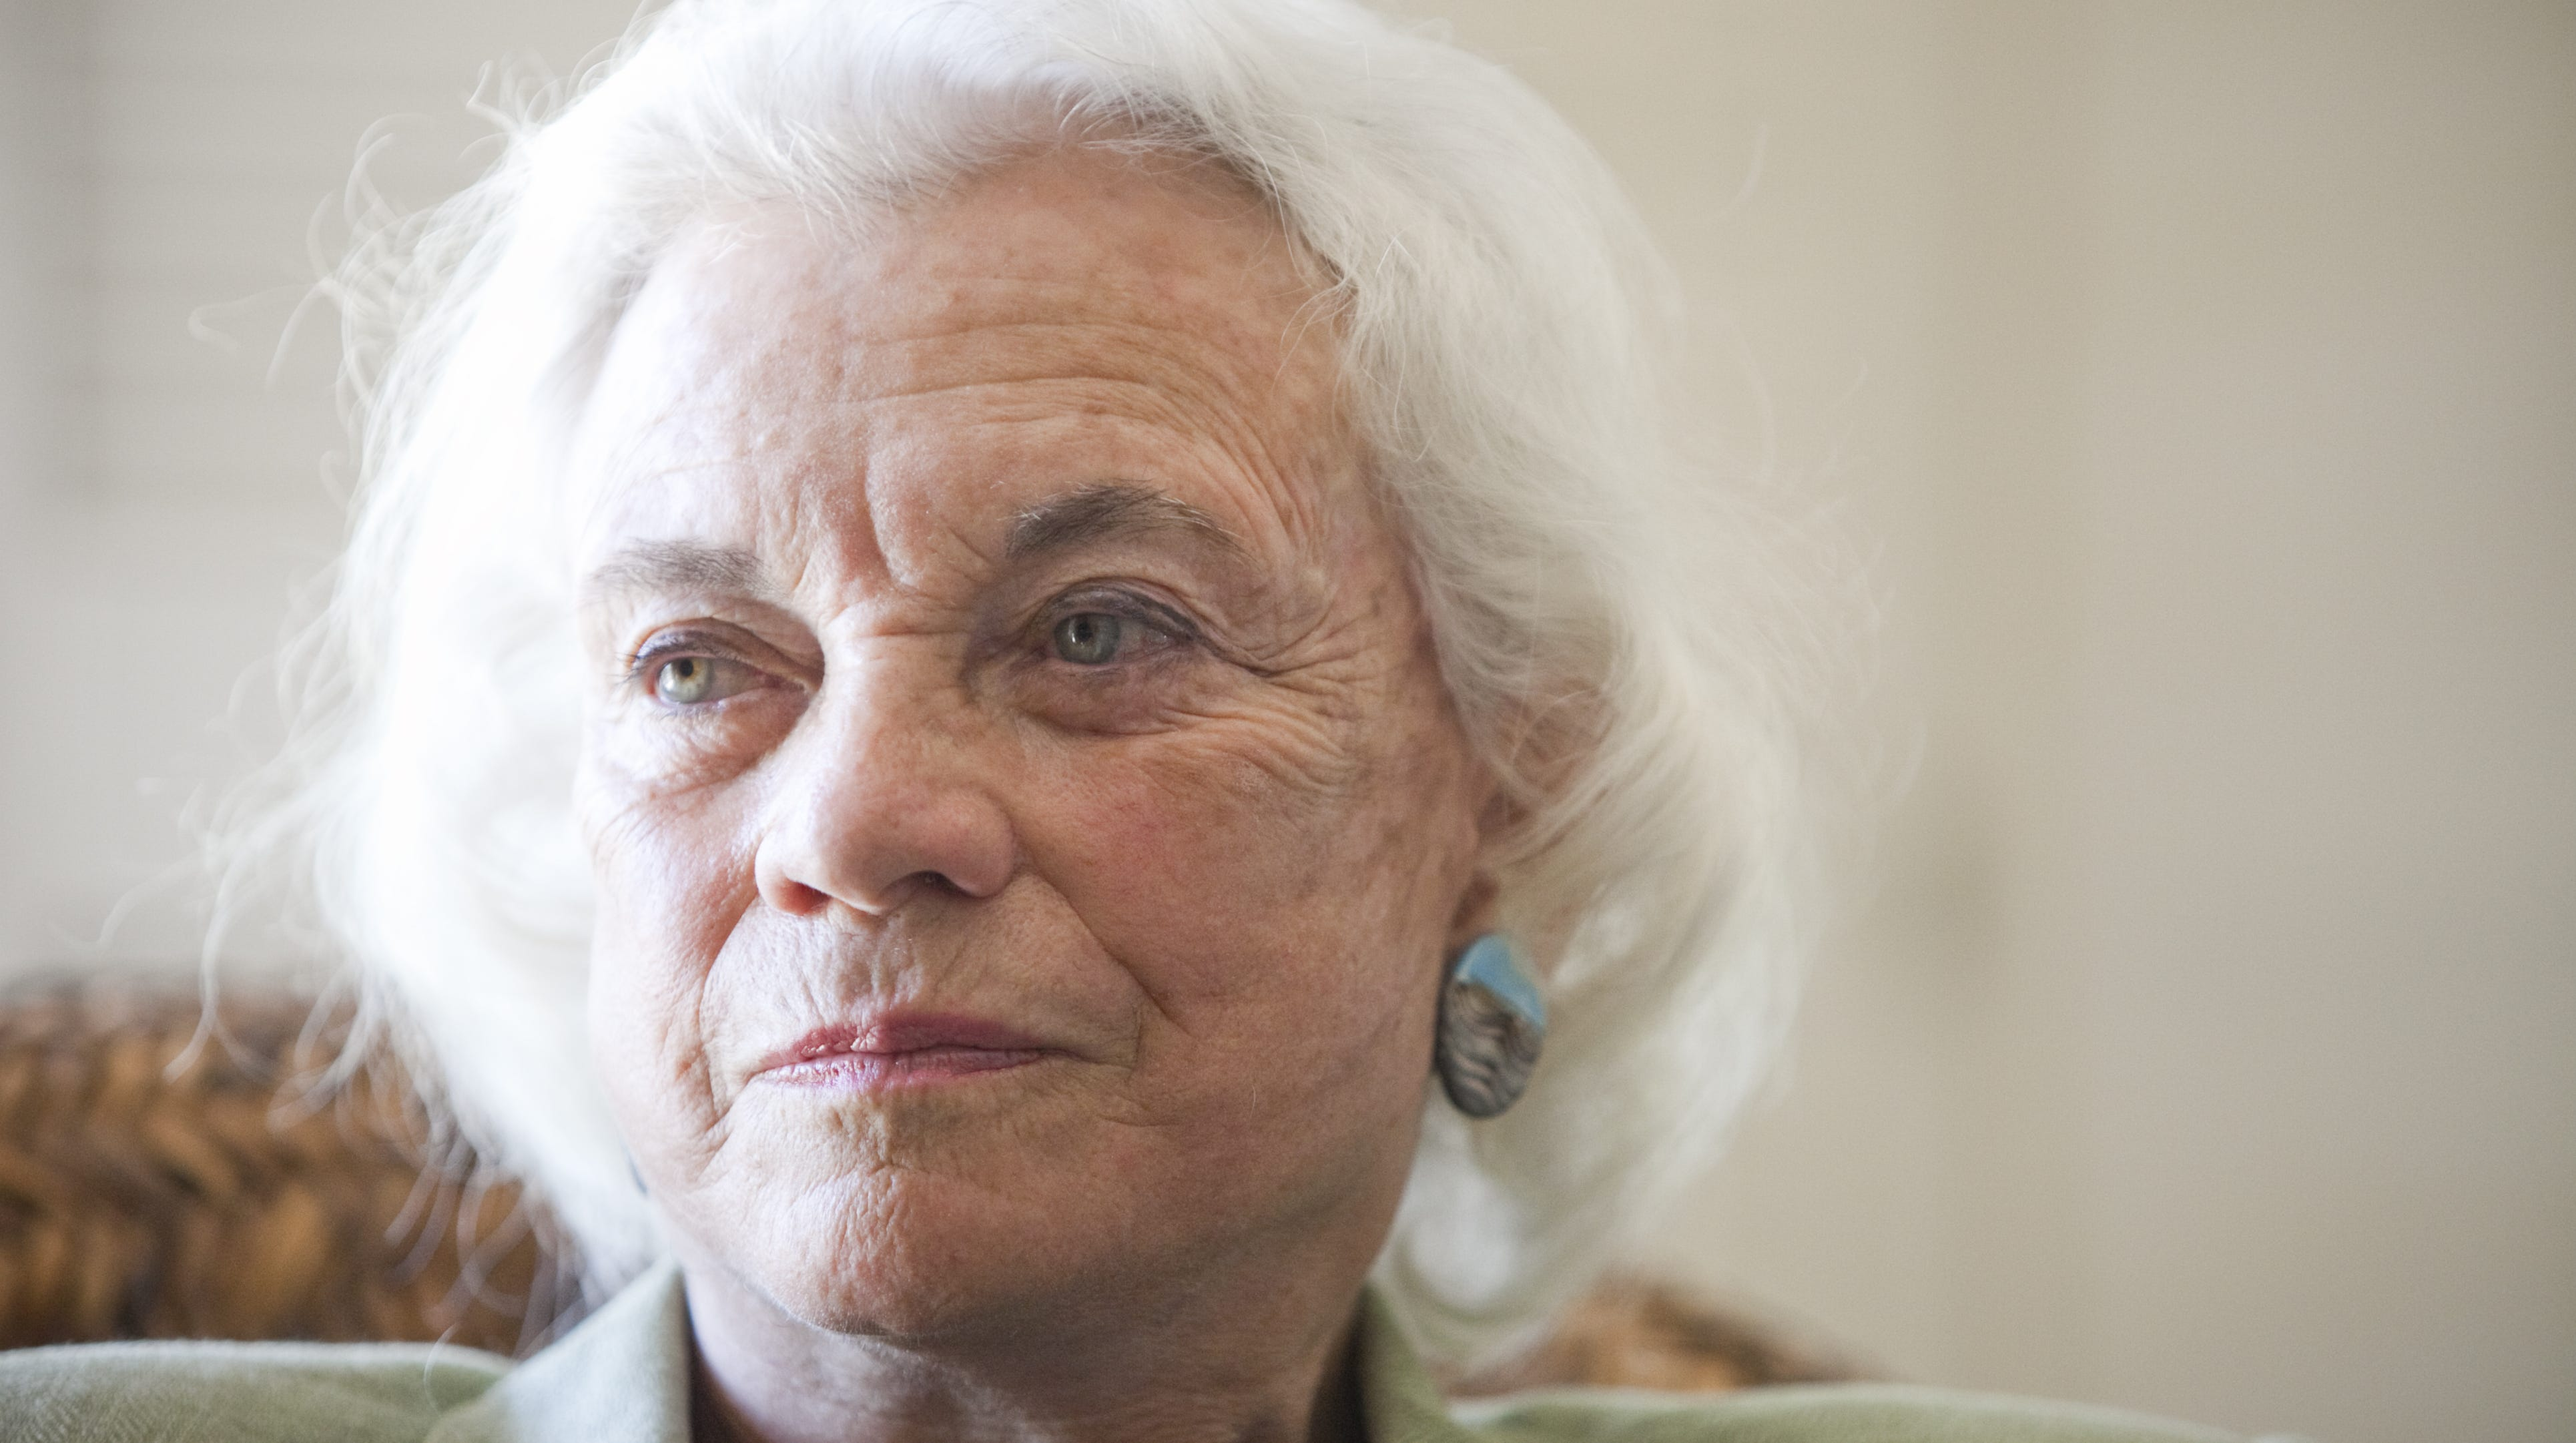 Sandra Day O'Connor, first woman on the Supreme Court, turns 89 Tuesday